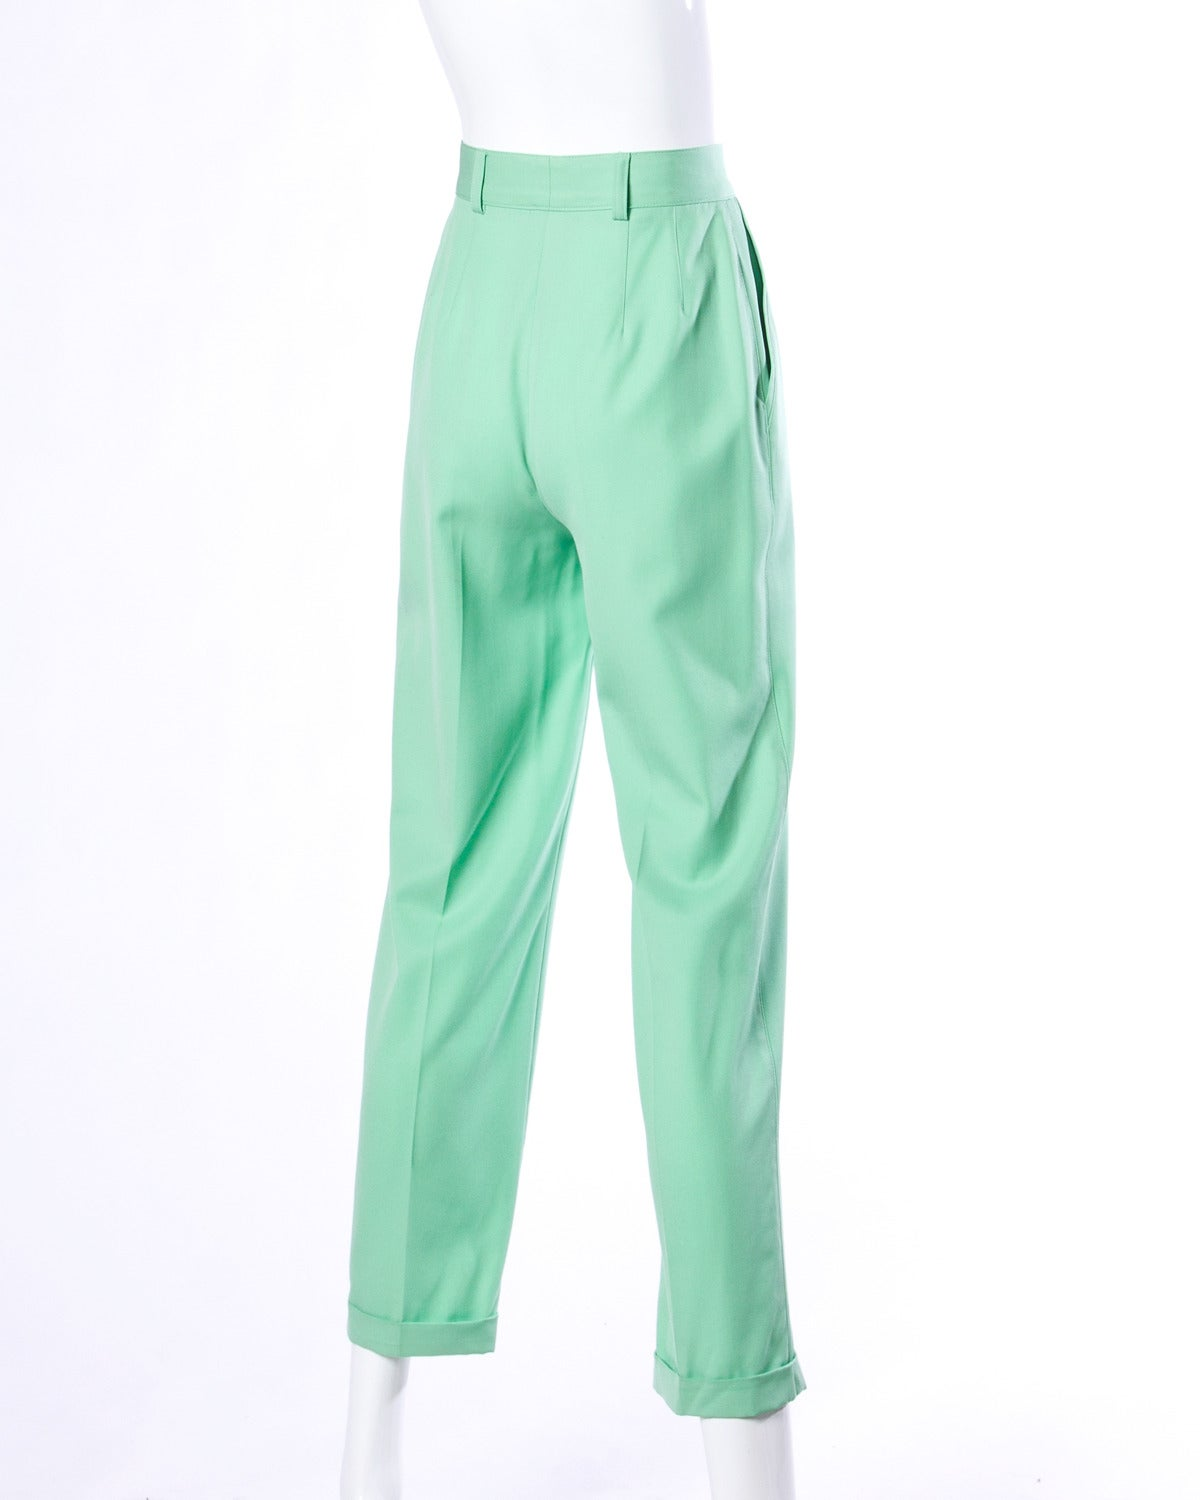 Blue Escada Vintage 1990s 90s Mint Green High Waisted Wool Trousers For Sale